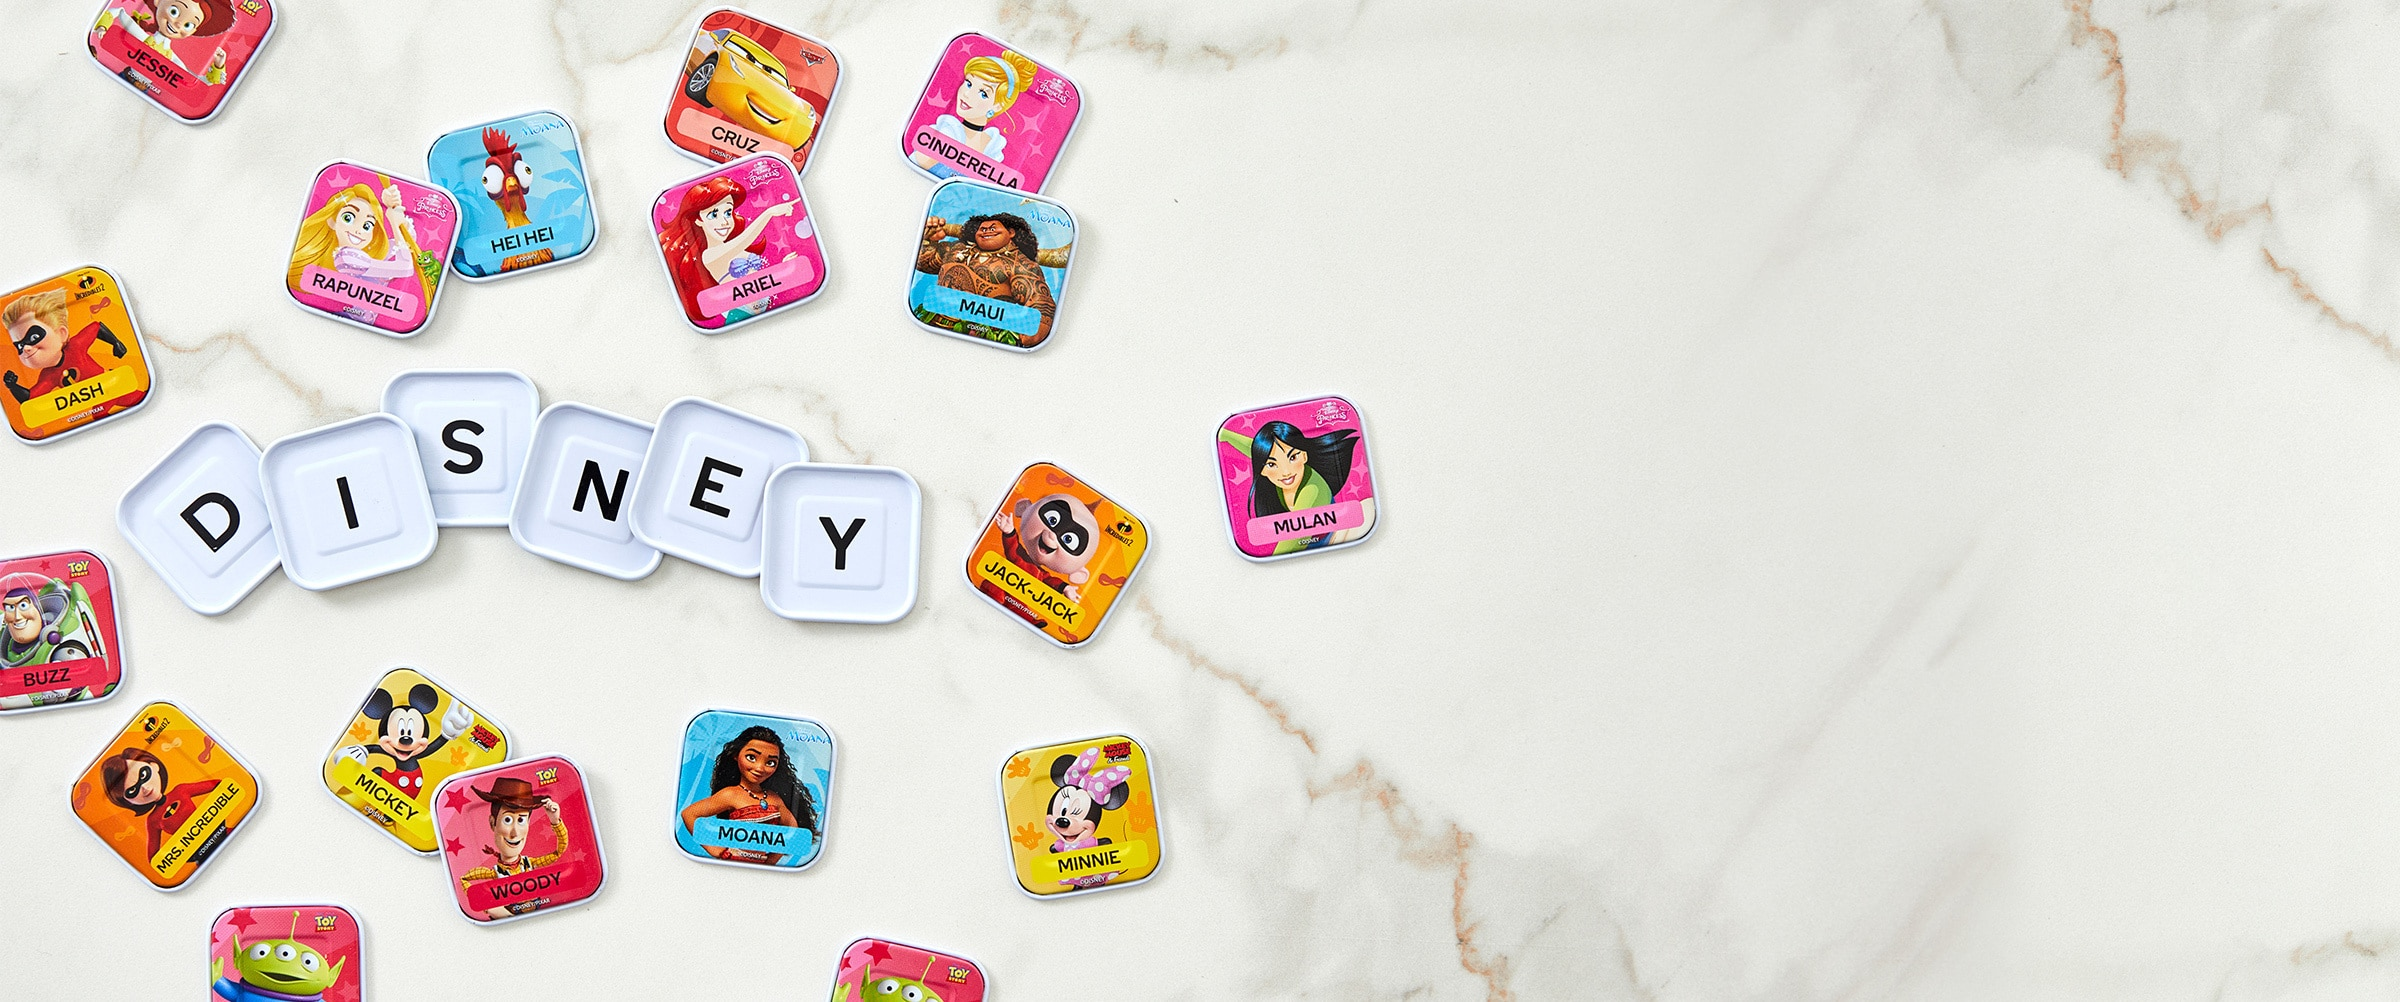 Disney Words | Games to Play | Article Page Hero